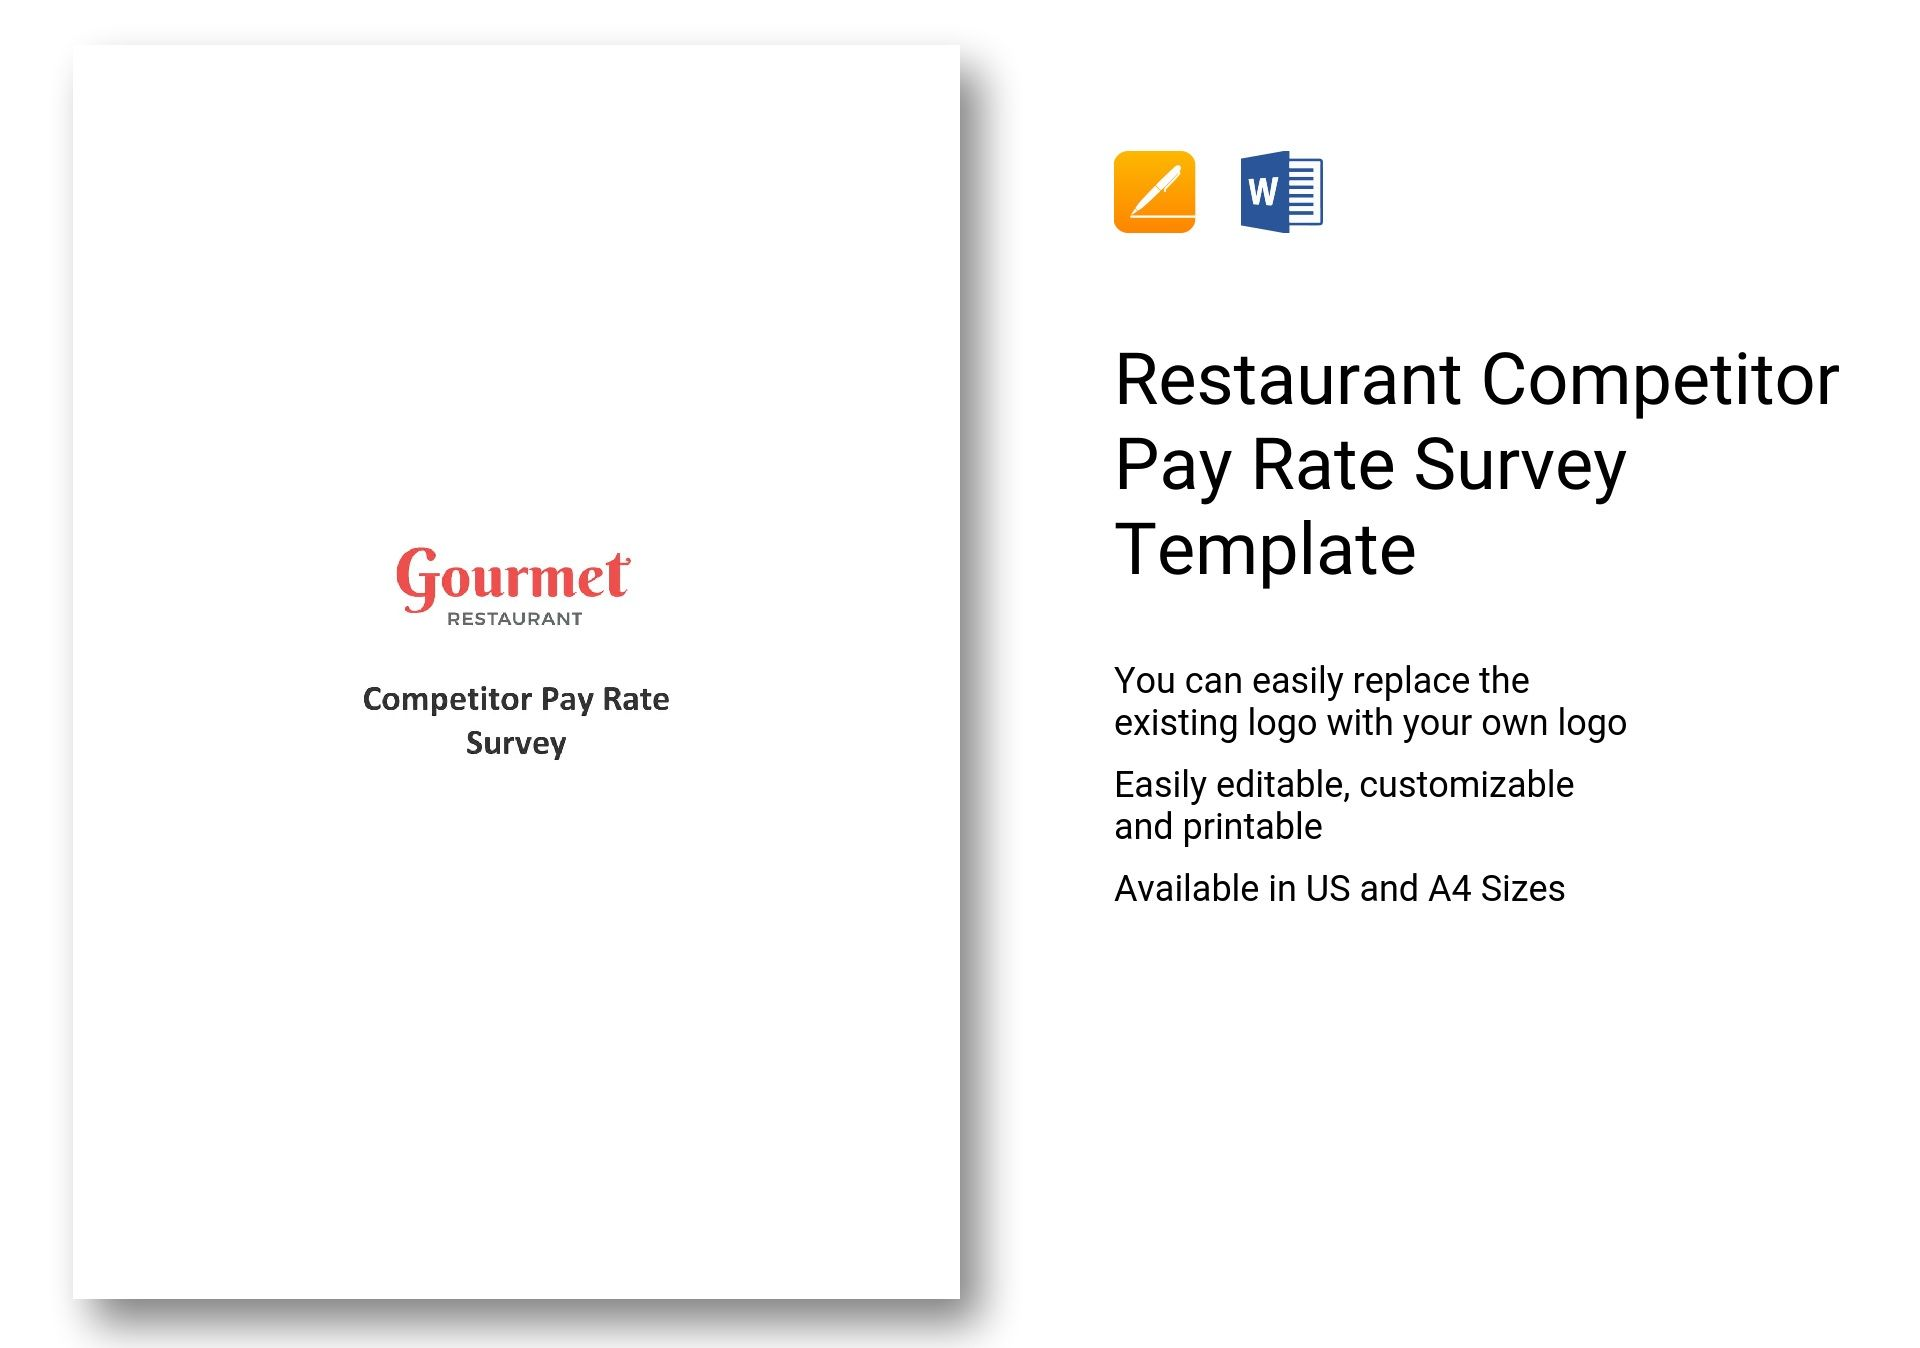 Restaurant Competitor Pay Rate Survey